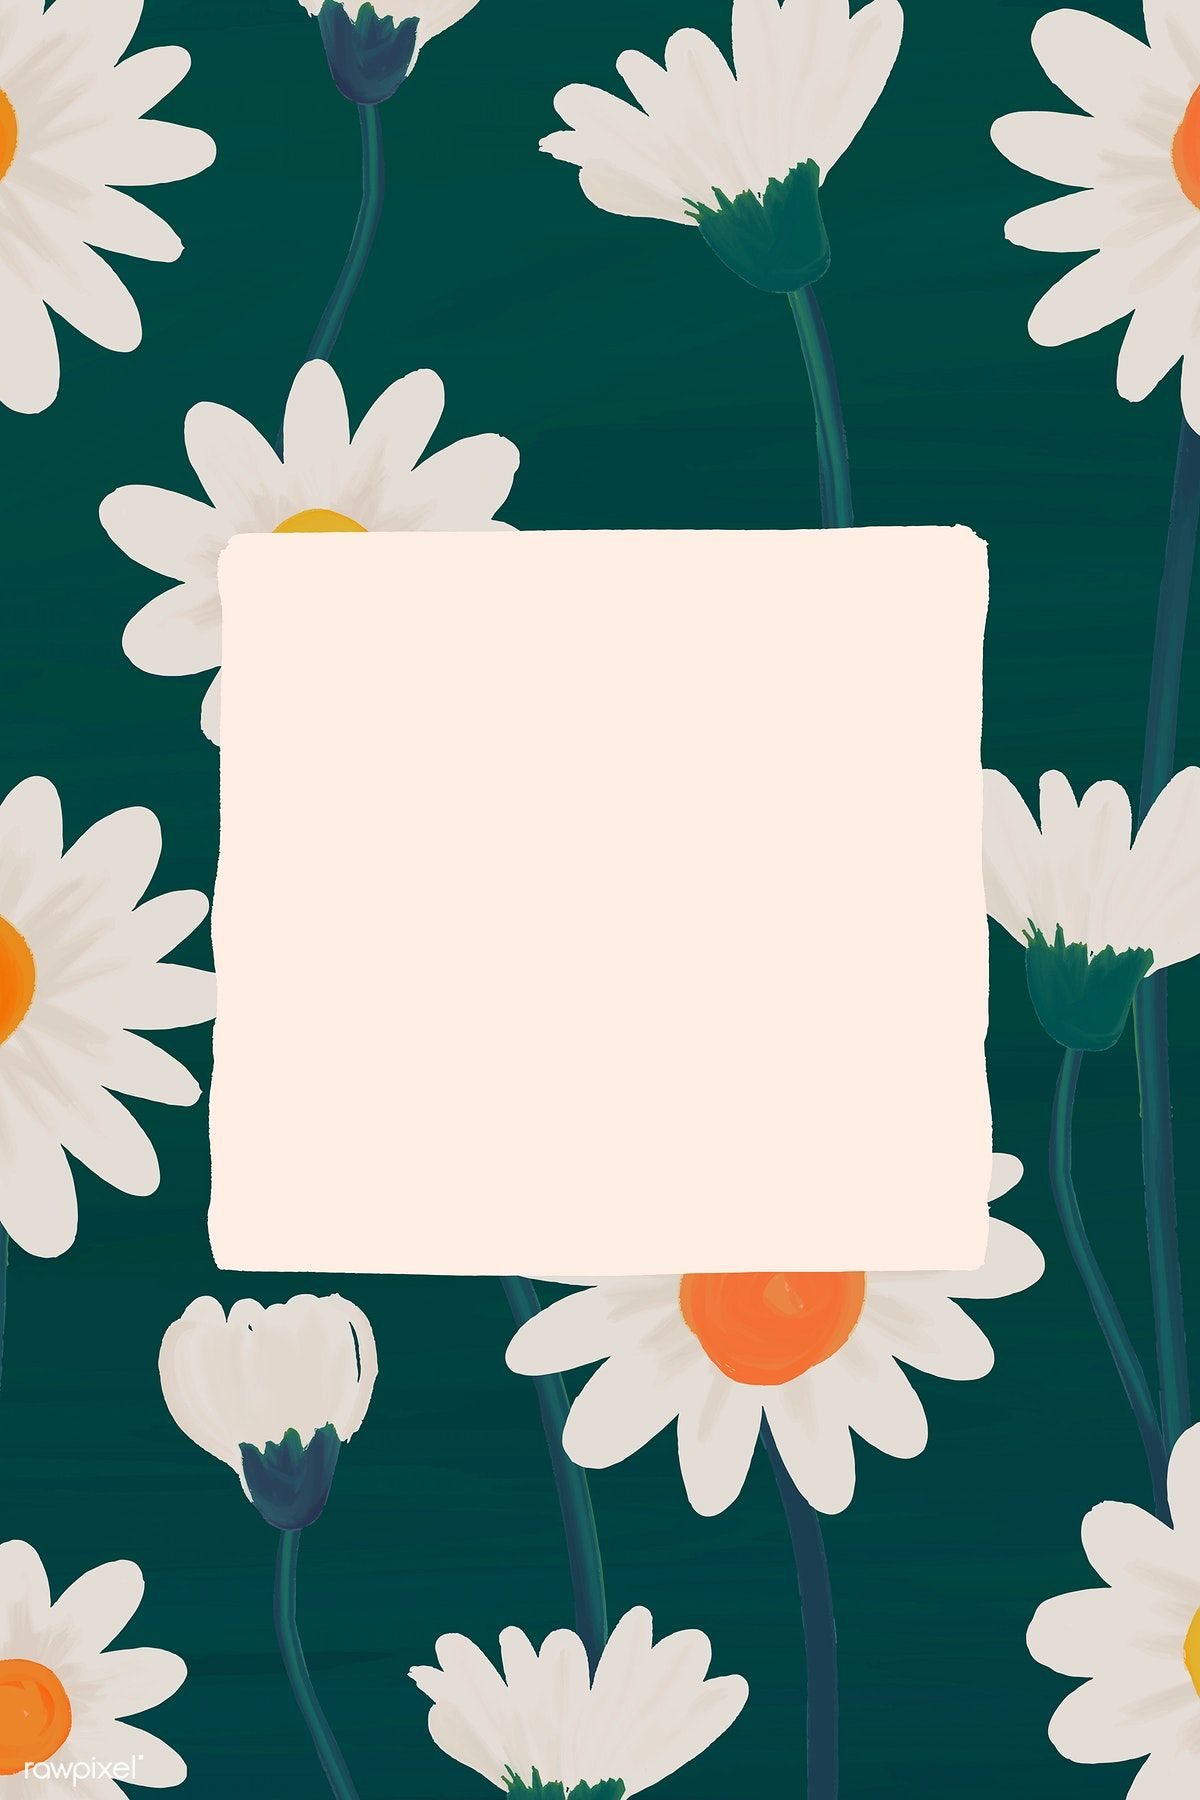 Download Premium Vector Of Rectangle Daisy Frame Vector 1229984 In 2020 Aesthetic Iphone Wallpaper Cute Wallpapers Photo Collage Template